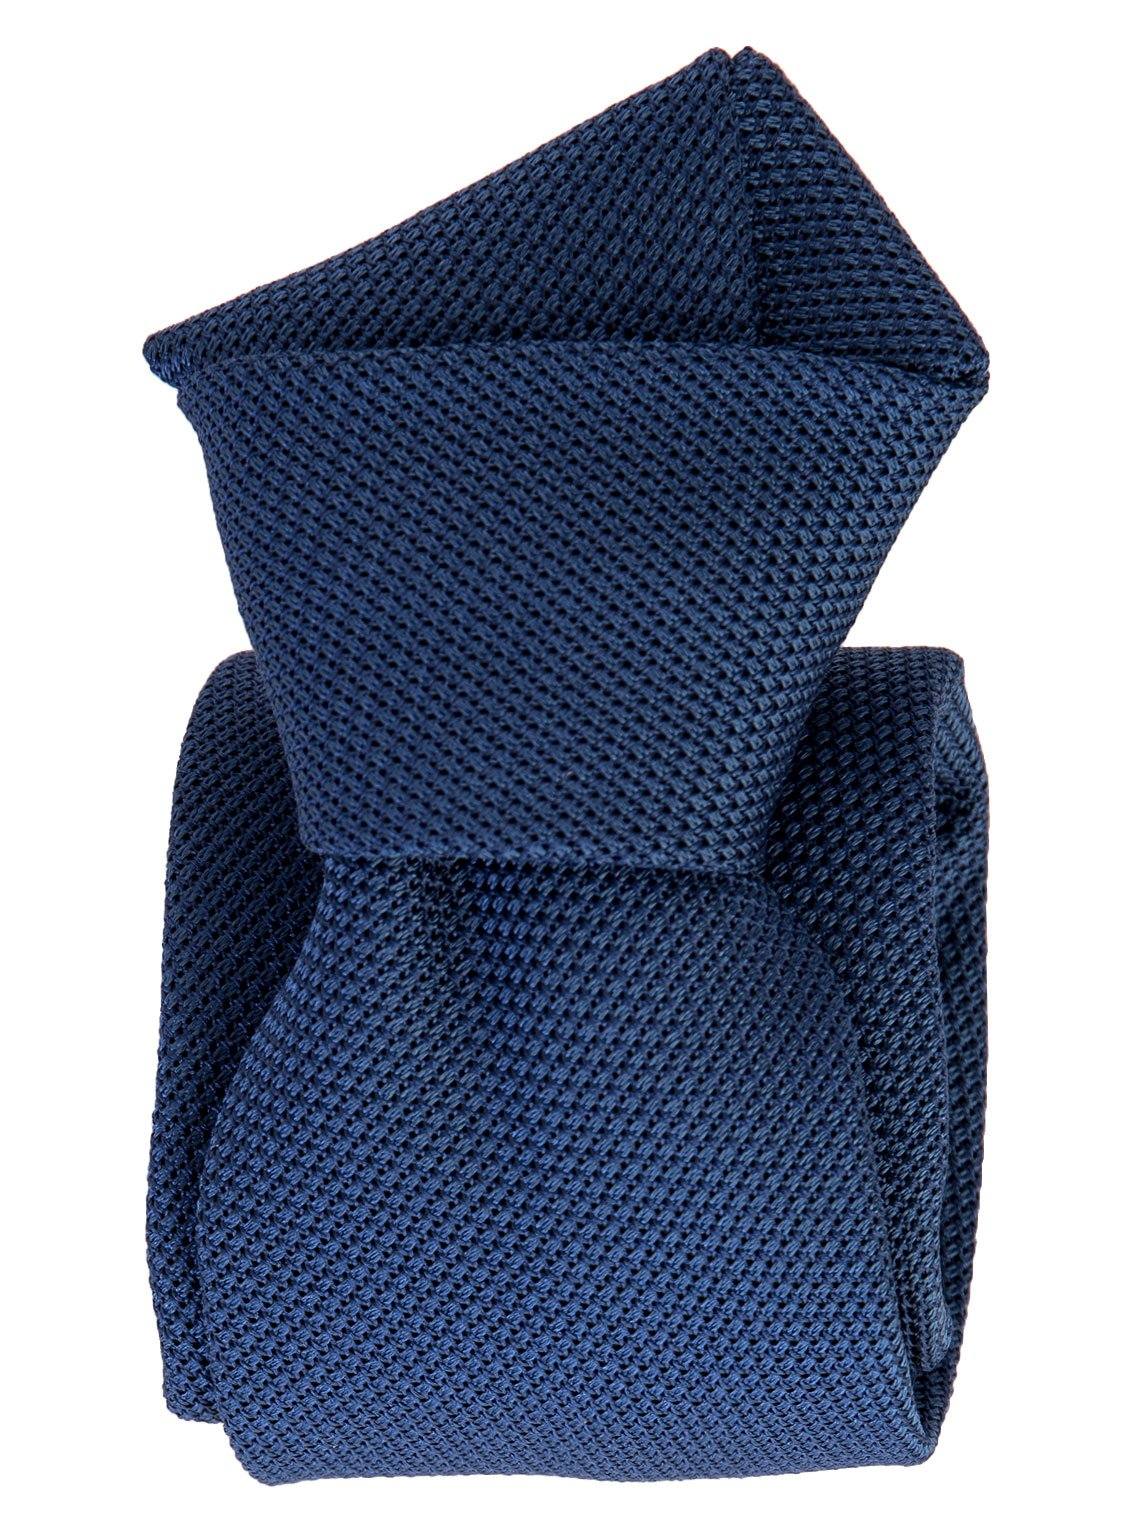 Elizabetta Men's Italian Silk Grenadine Tie, Extra Long, Solid Blue, Handmade